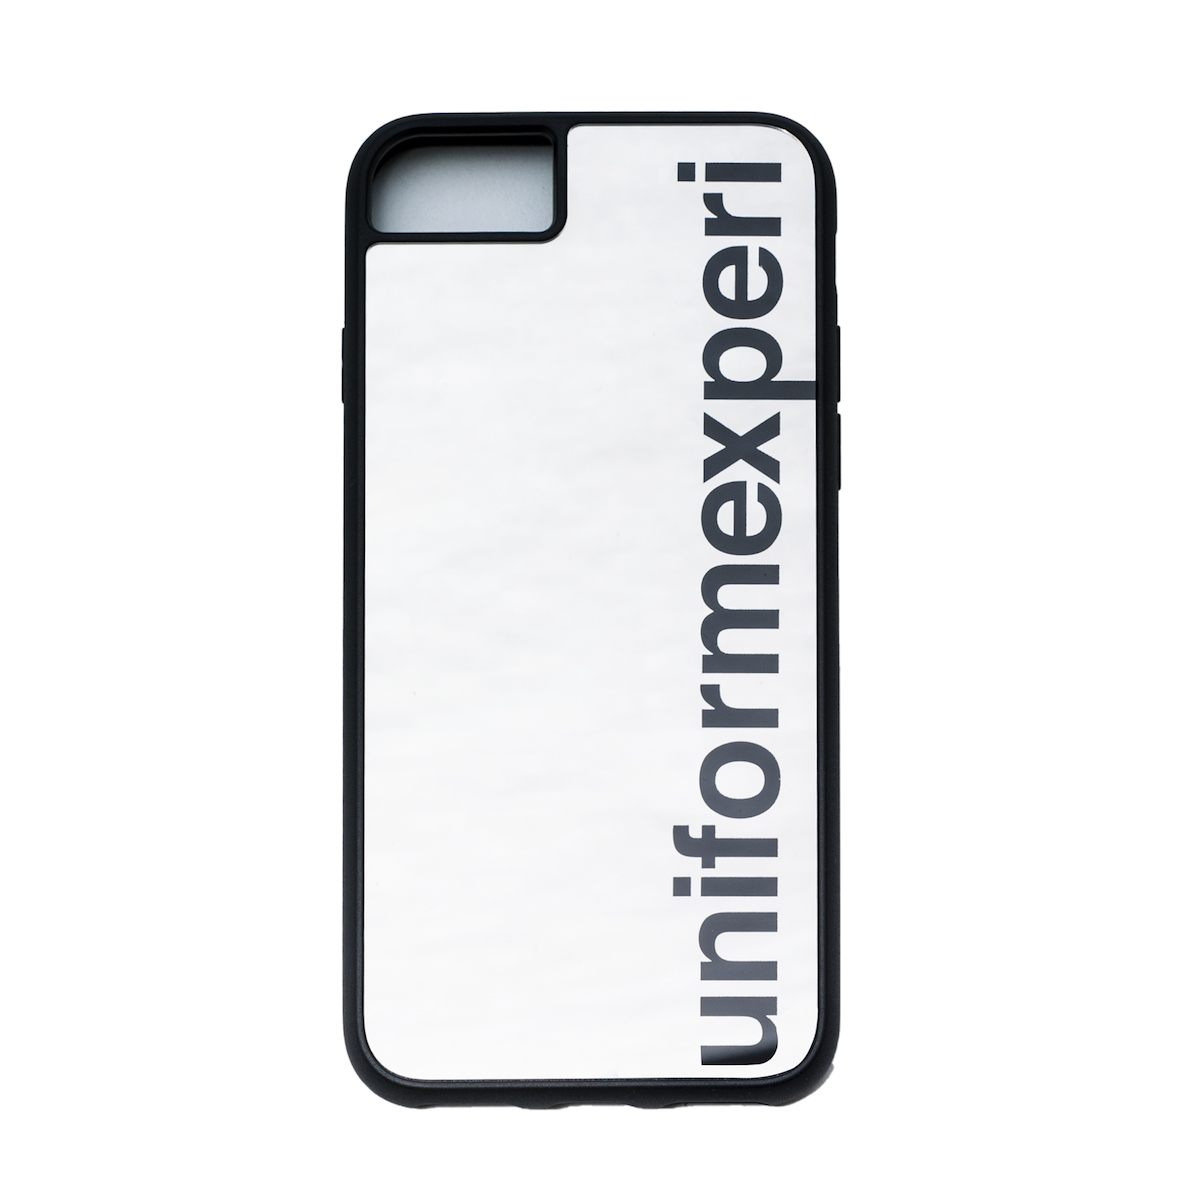 uniform experiment / MIRROR PHONE CASE for iPhone 6/7/8 -Silver